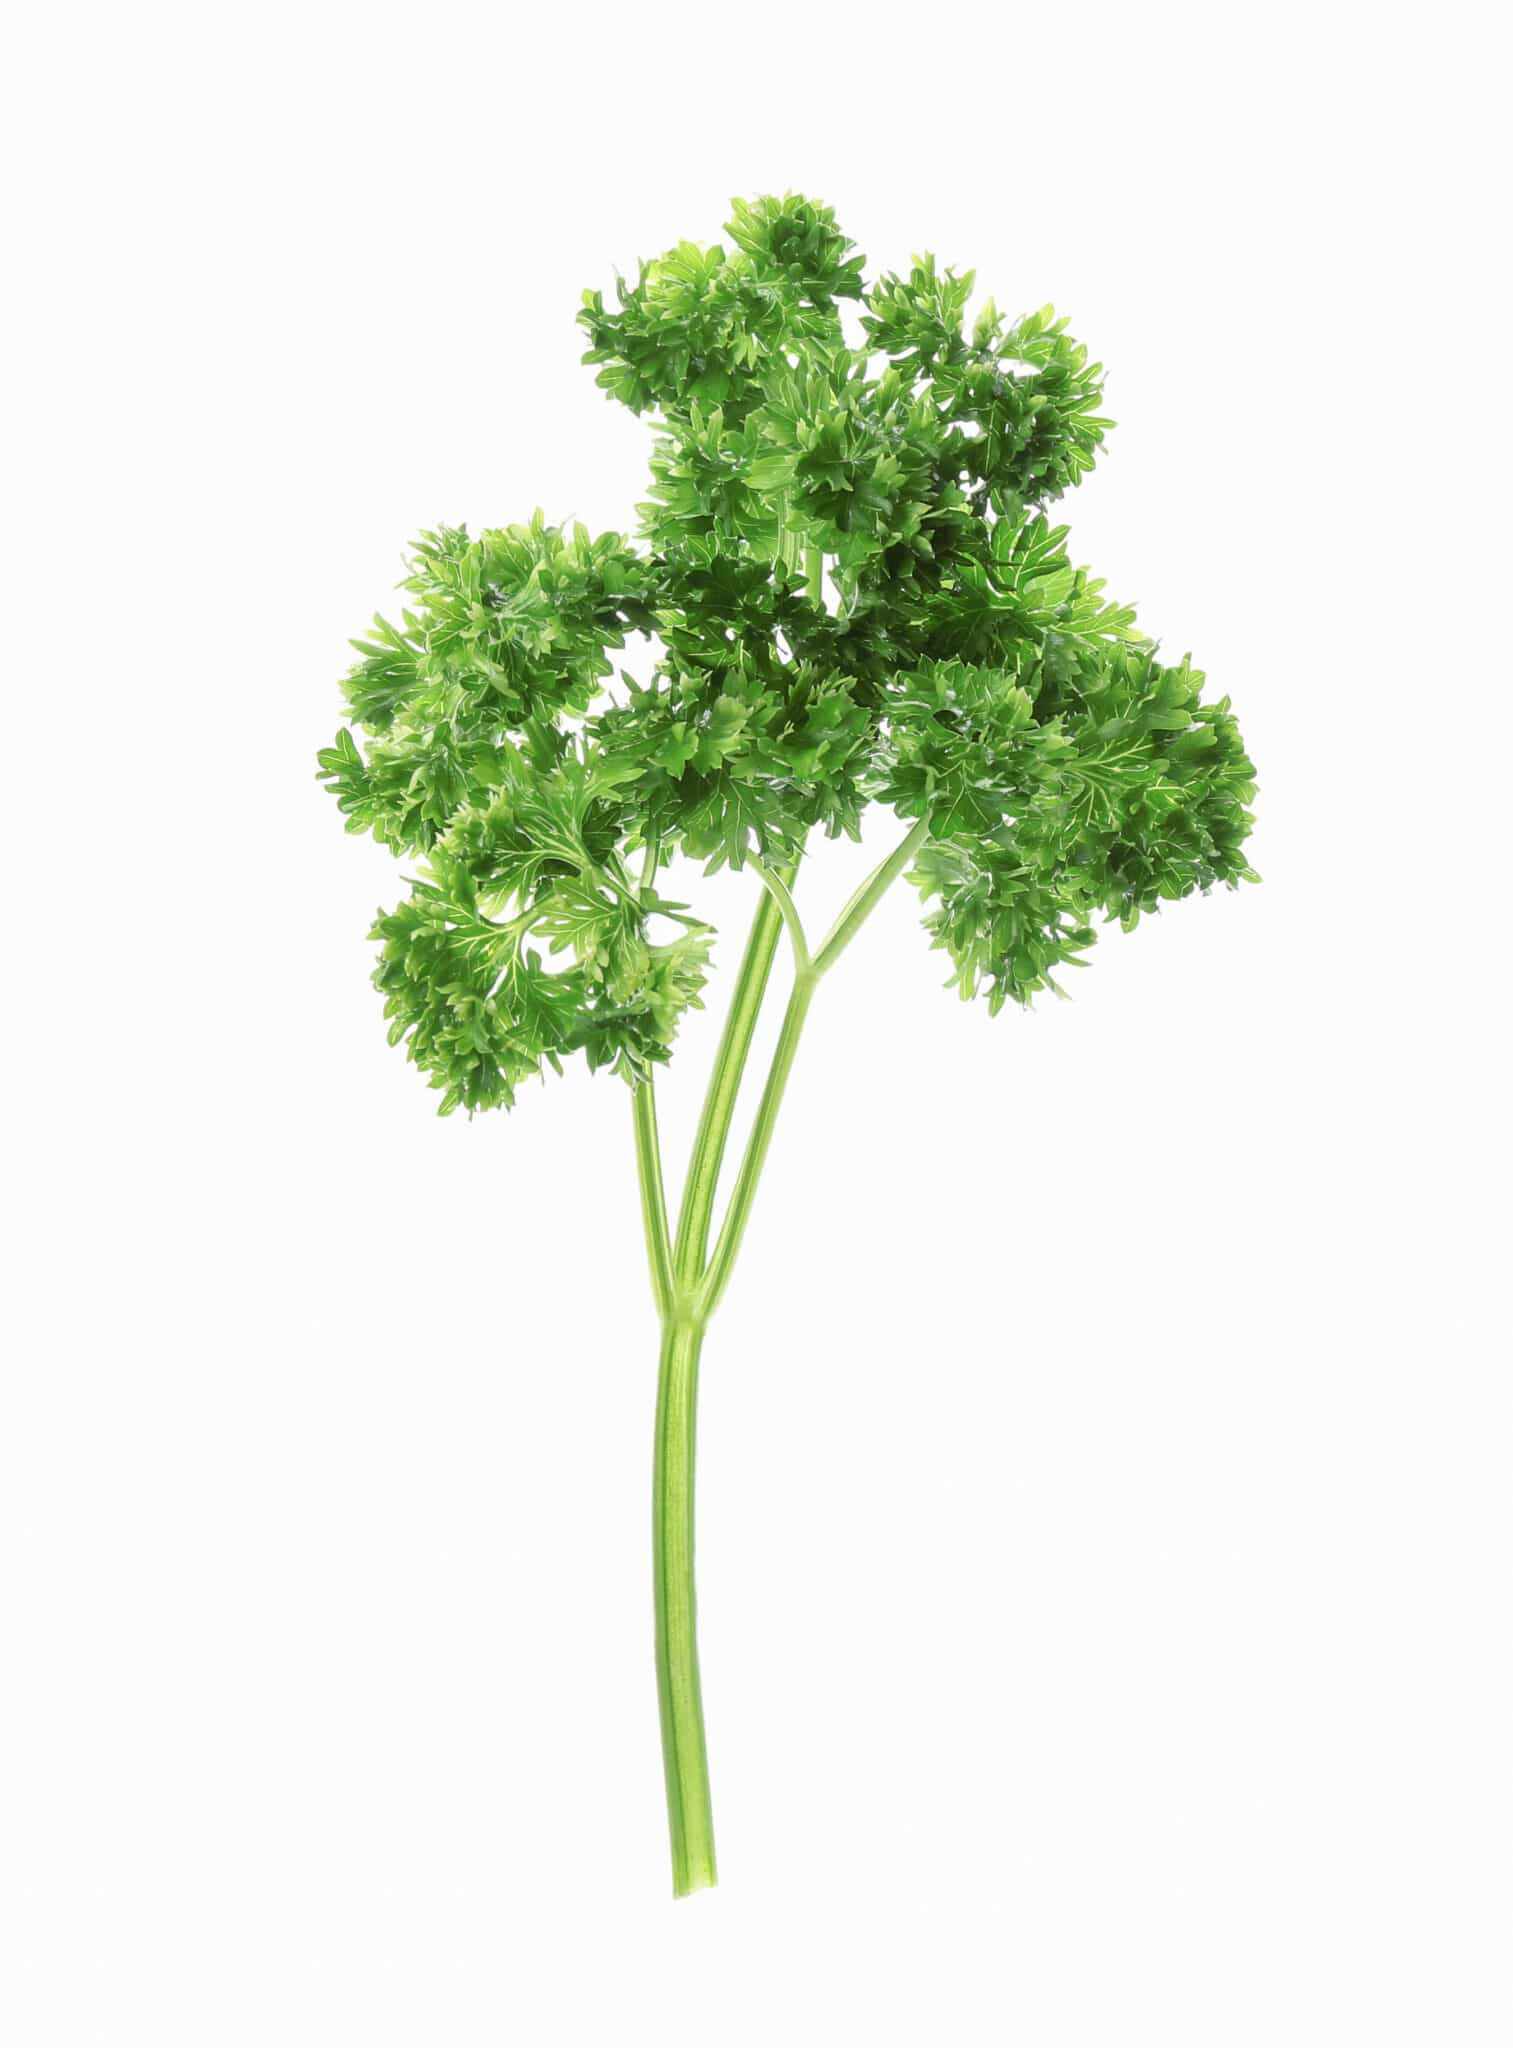 Fresh green curly parsley on white background.